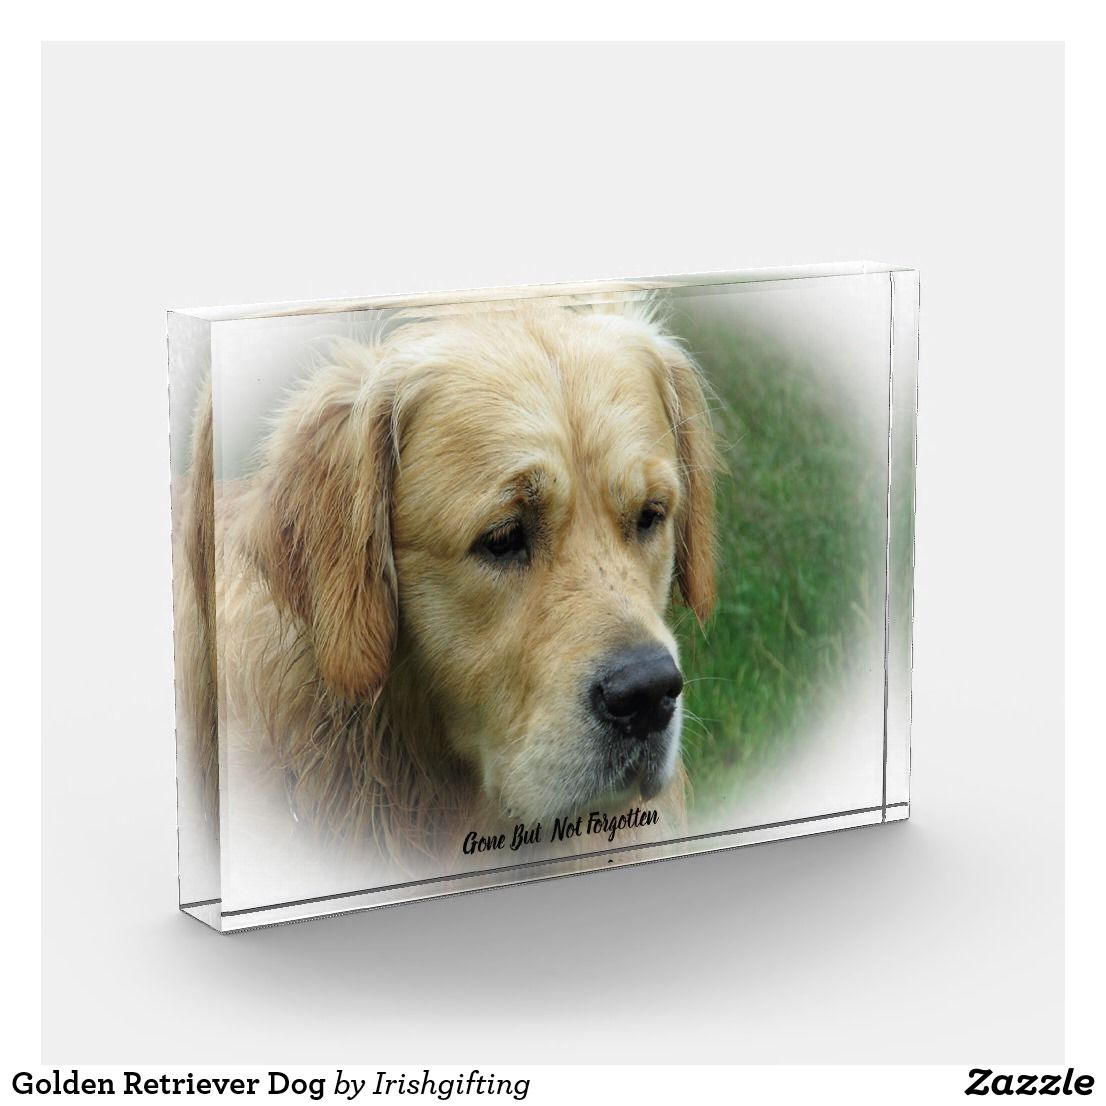 Golden Retriever Dog Acrylic Award Zazzle Co Uk Dogs Golden Retriever Golden Retriever My Pet Dog